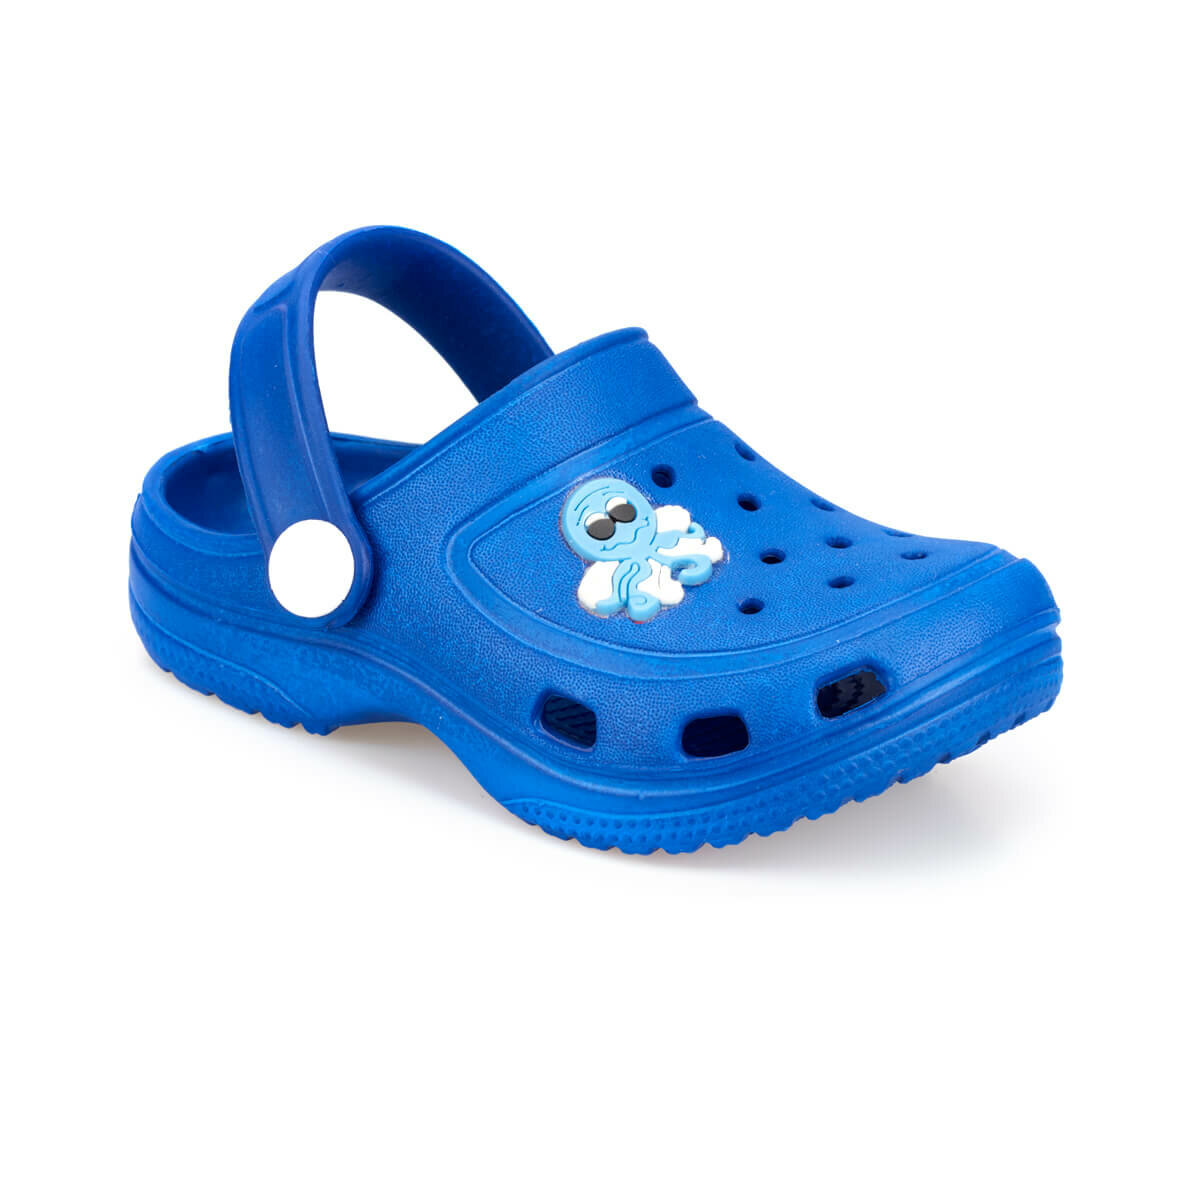 FLO FROG Saks Male Child Slippers KINETIX